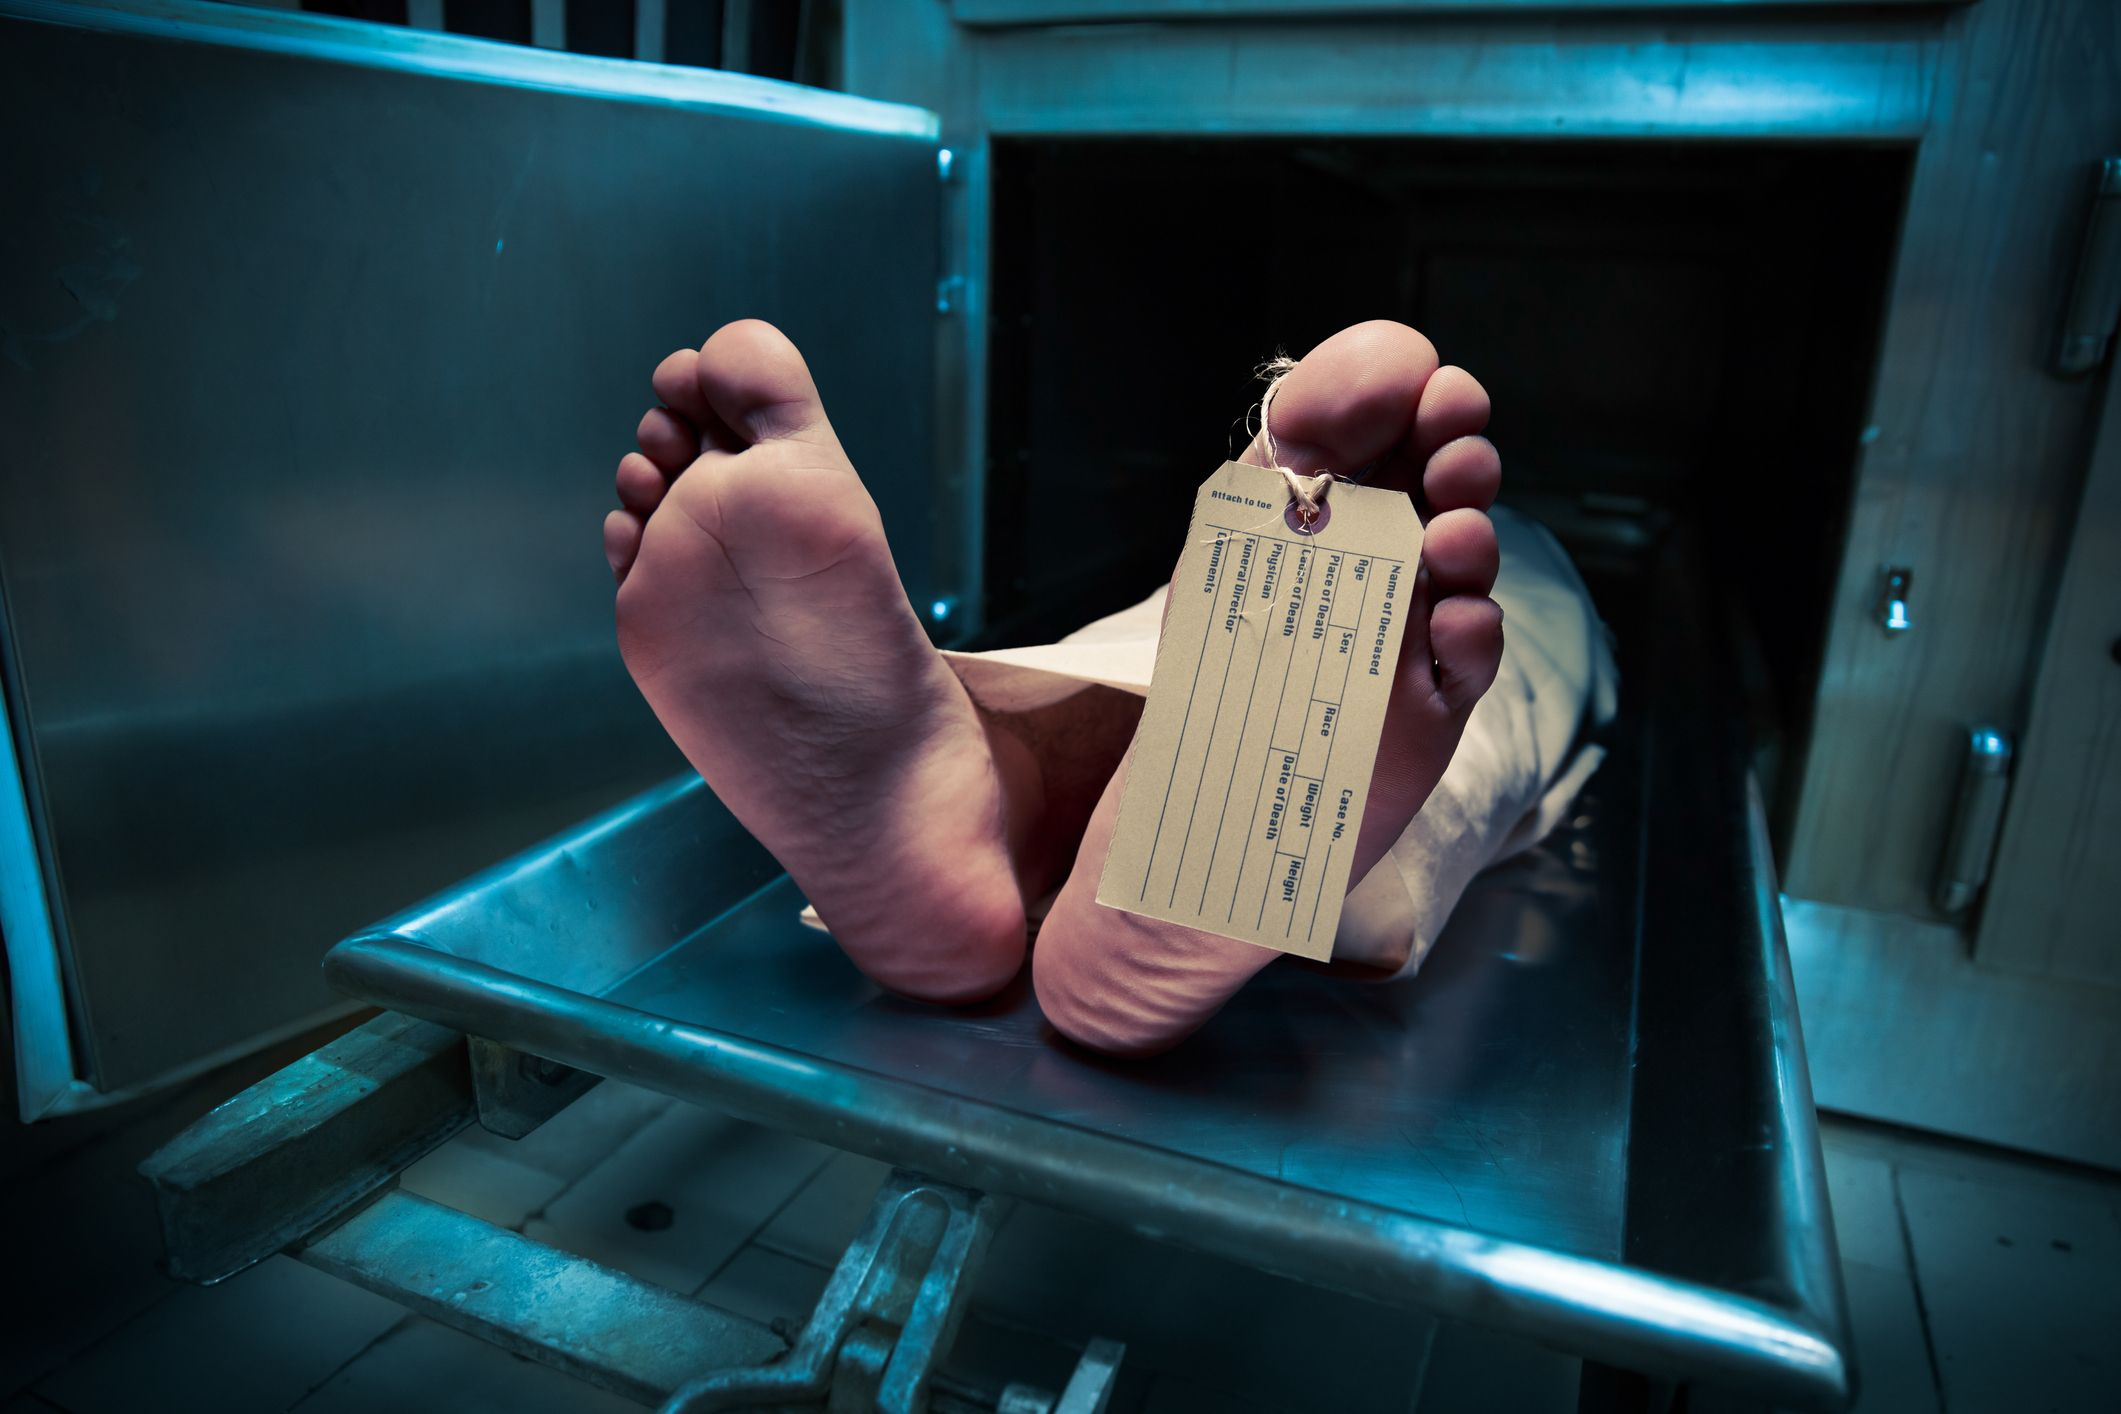 'Dead' woman found alive in South African morgue fridge